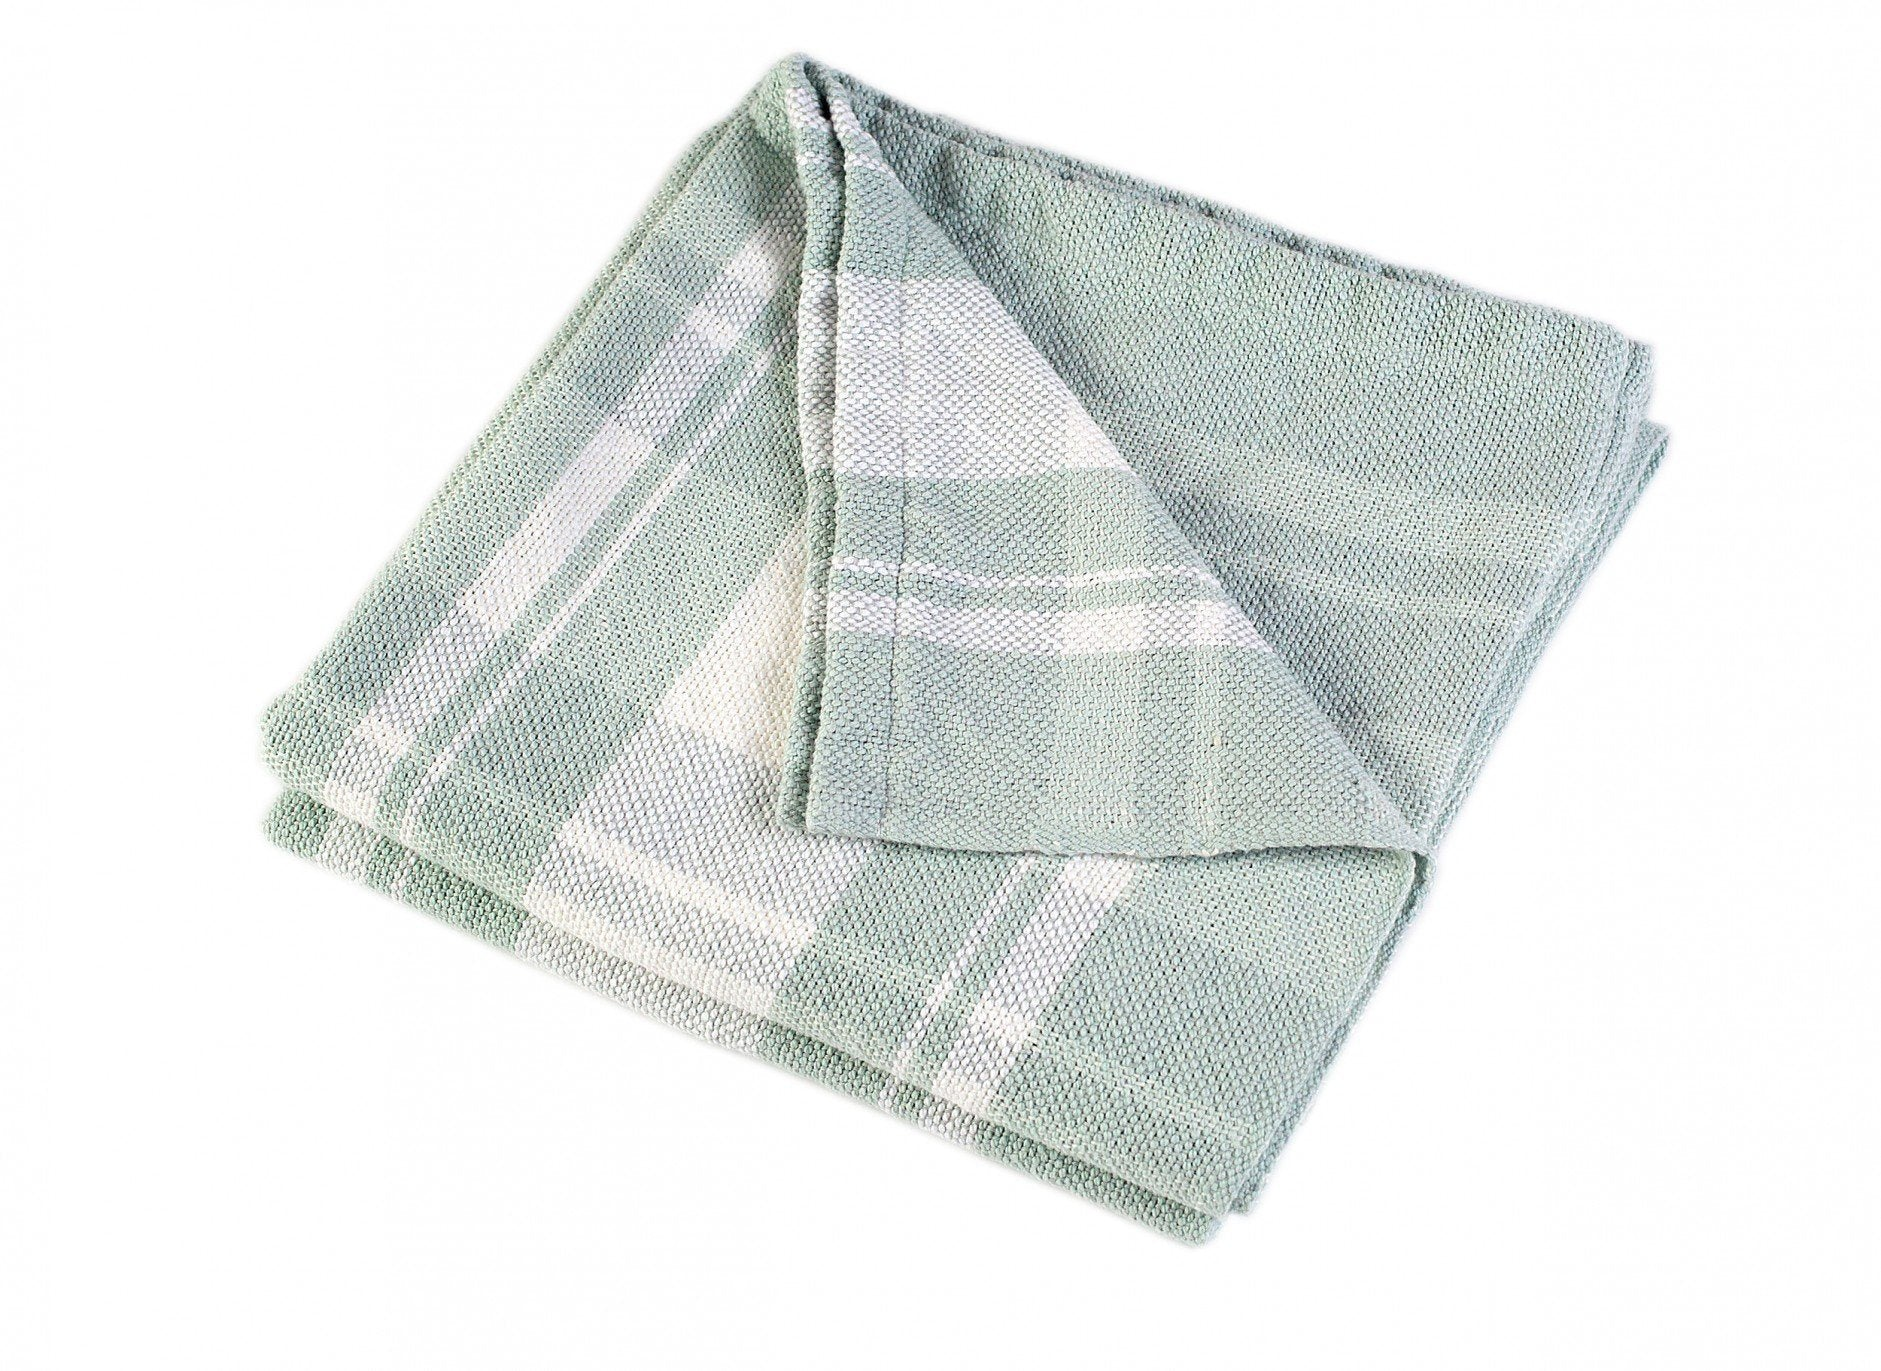 Bailey Surf Day Blanket by Brahms Mount